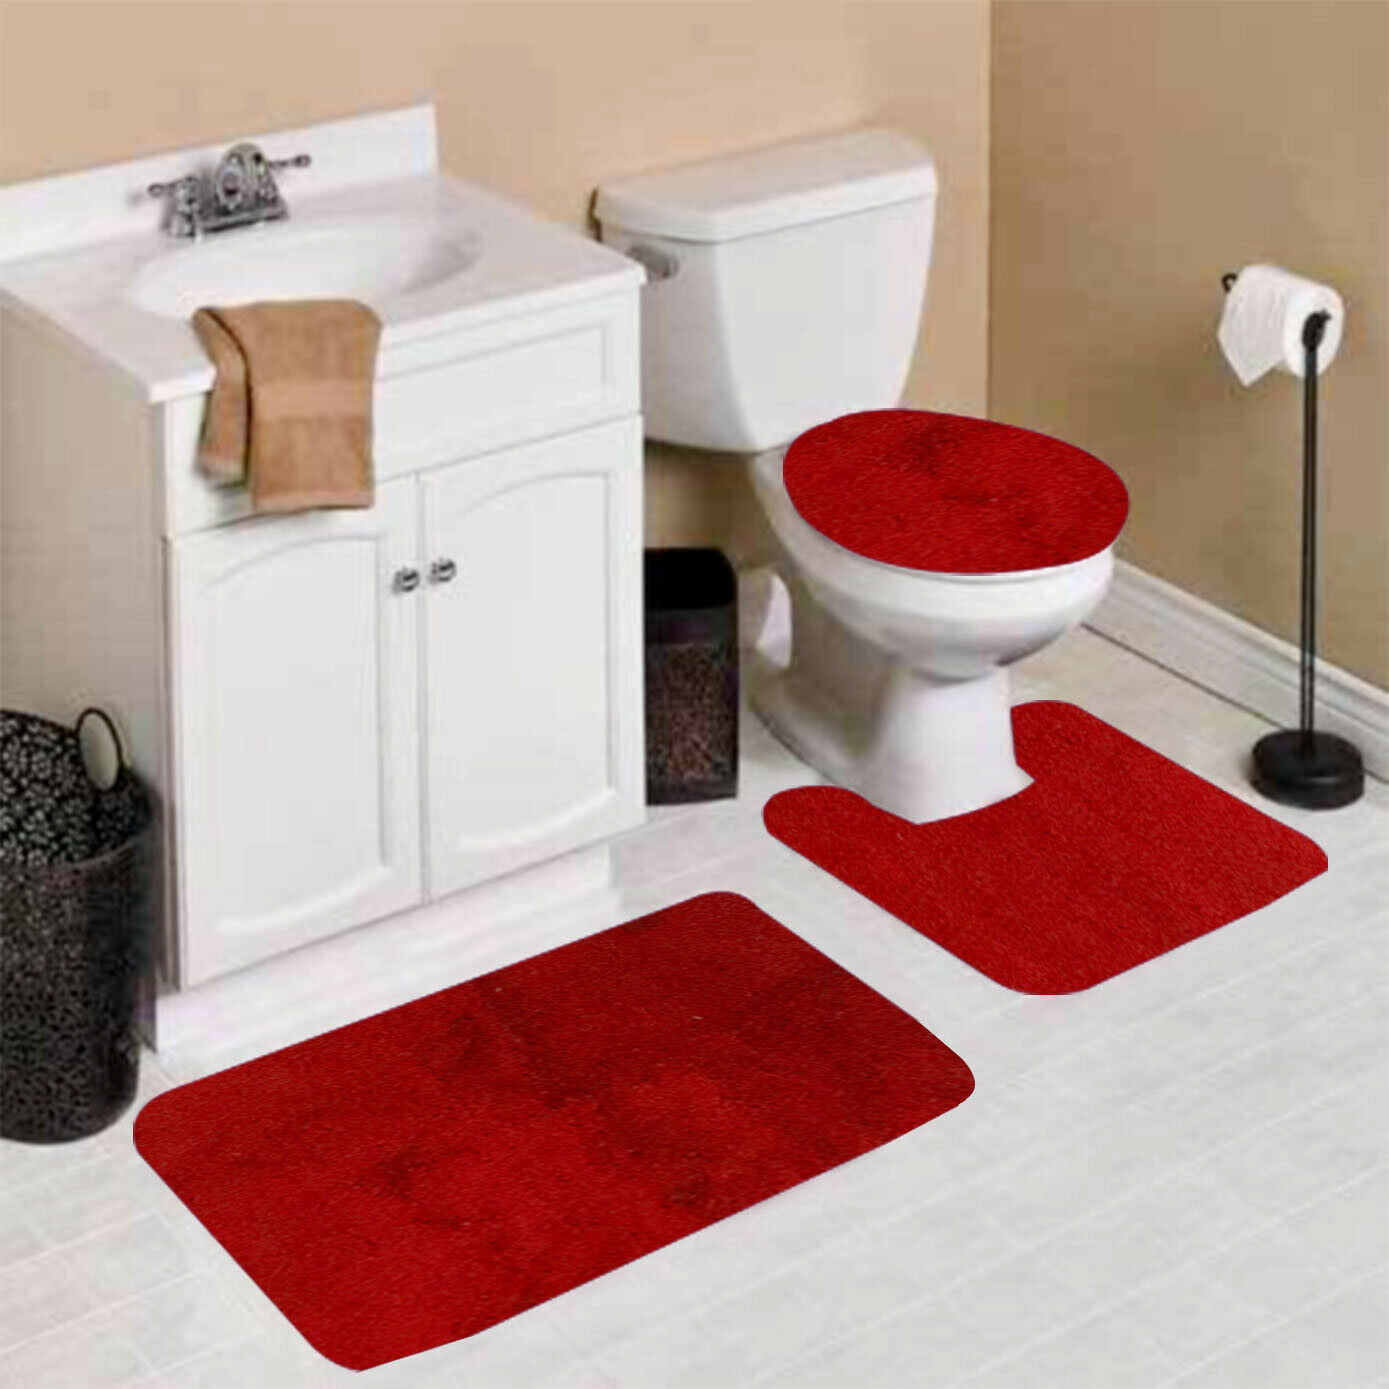 3 Pc 5 Red Design Bathroom Bath Mat Set Includes 1 Contour Lid Toilet Cover Ultra Absorbent With Anti Slip Backings Walmart Com